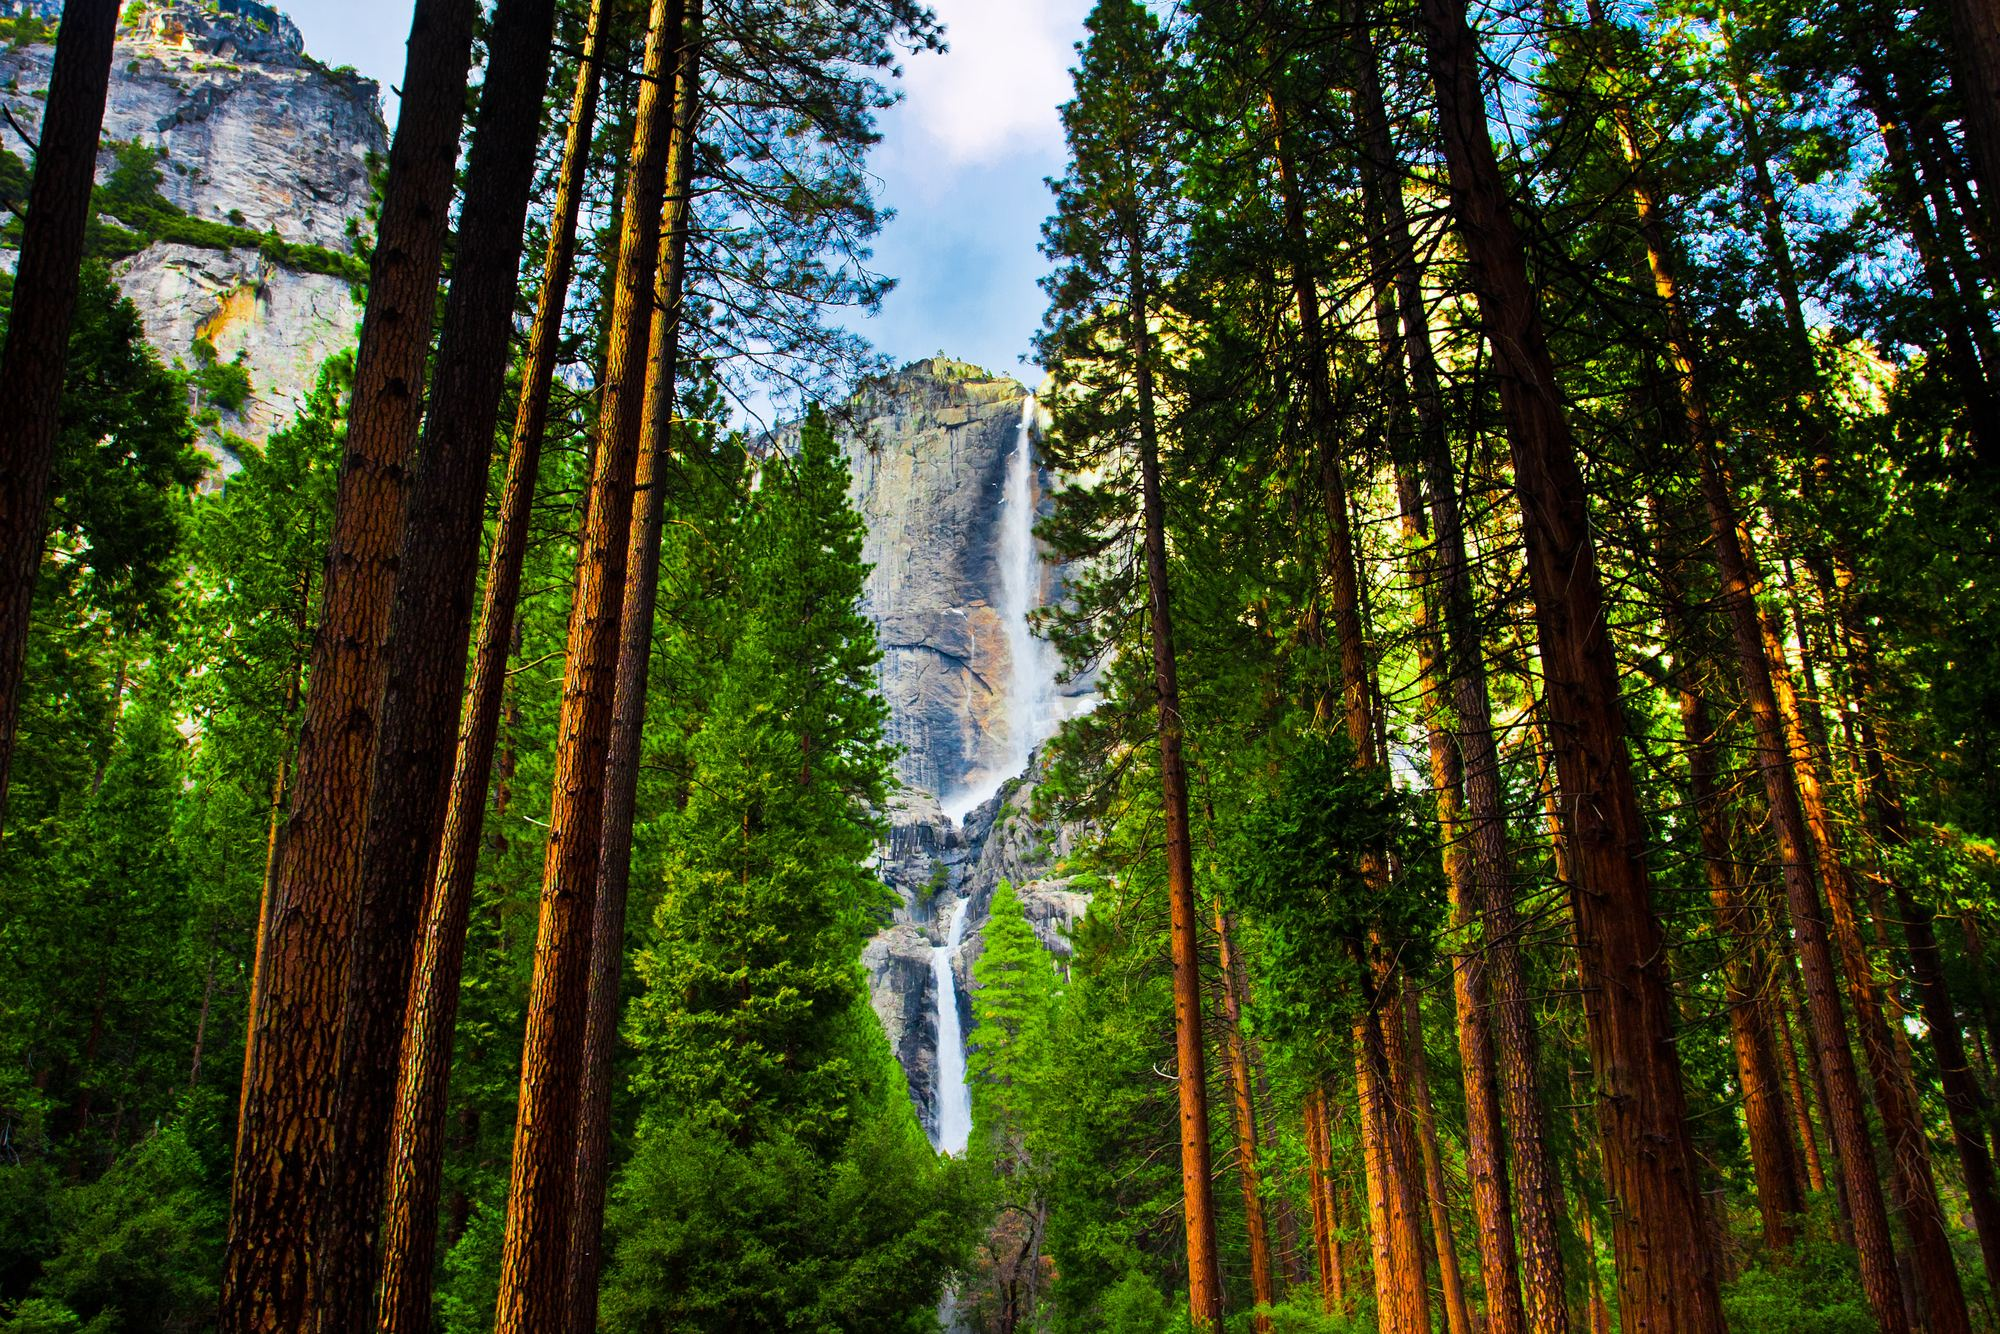 Yosemite waterfall behind giant Sequoia trees